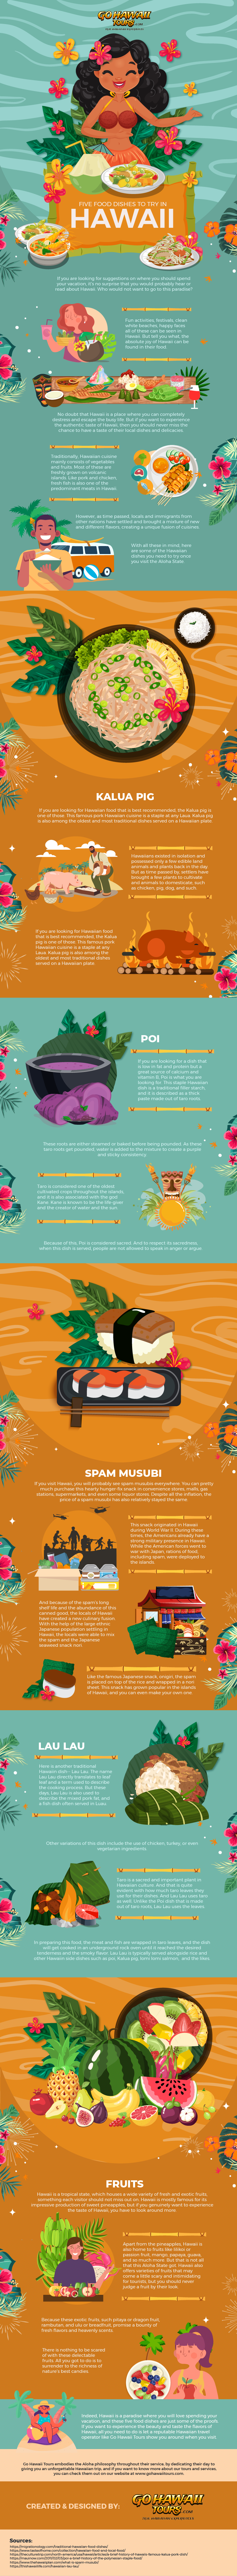 Five food dishes to try in Hawaii-infographic image01325